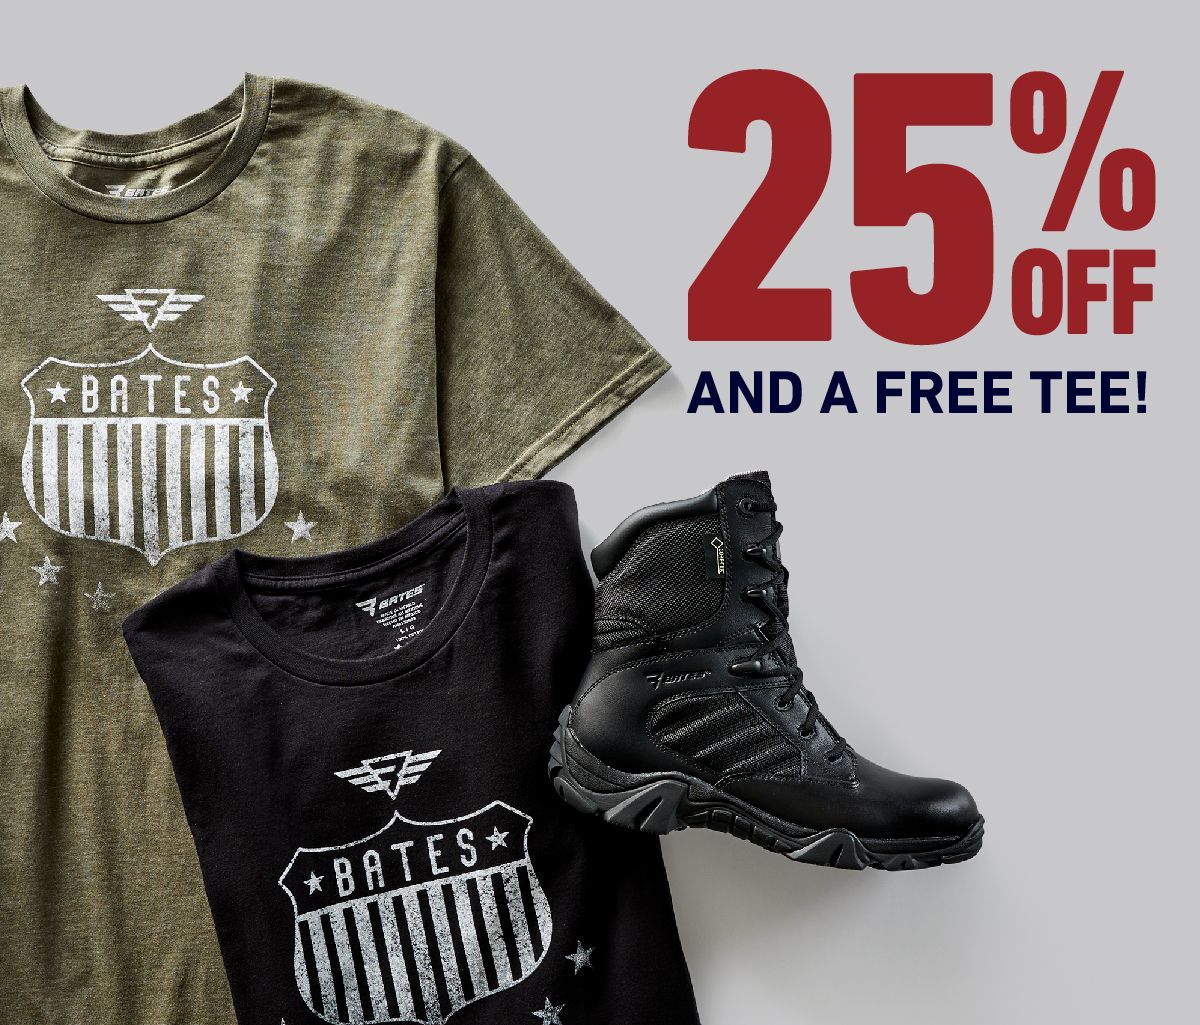 25% OFF AND A FREE TEE!